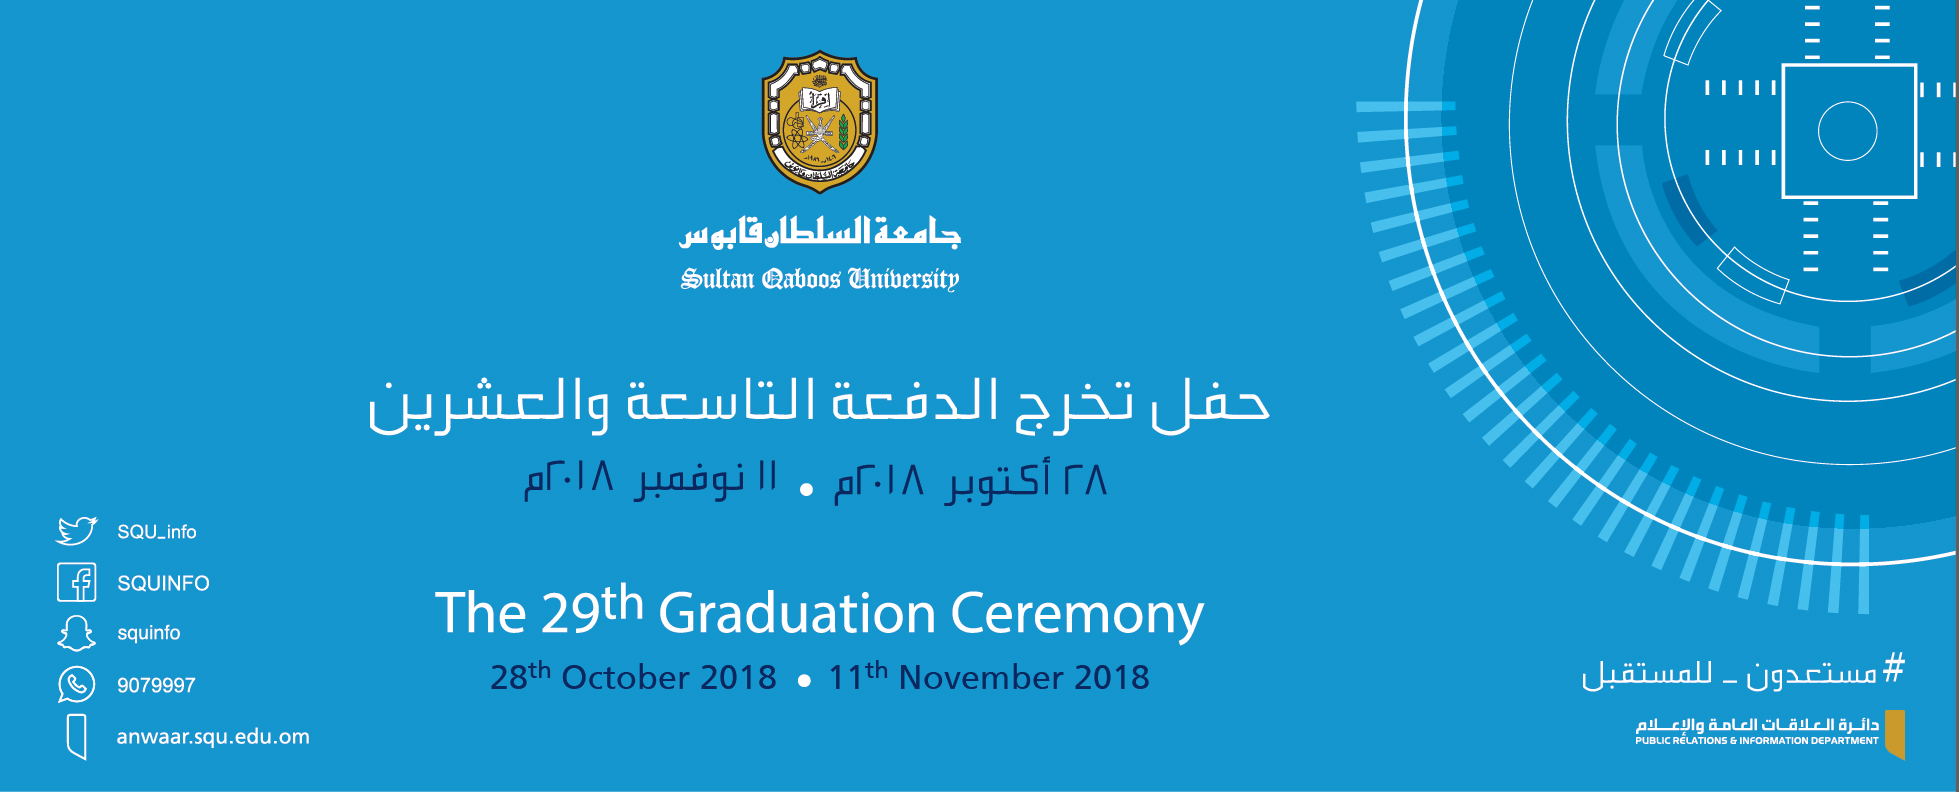 imgThe 29th Graduation Ceremony | 28th October 2018 - 11th November 2018